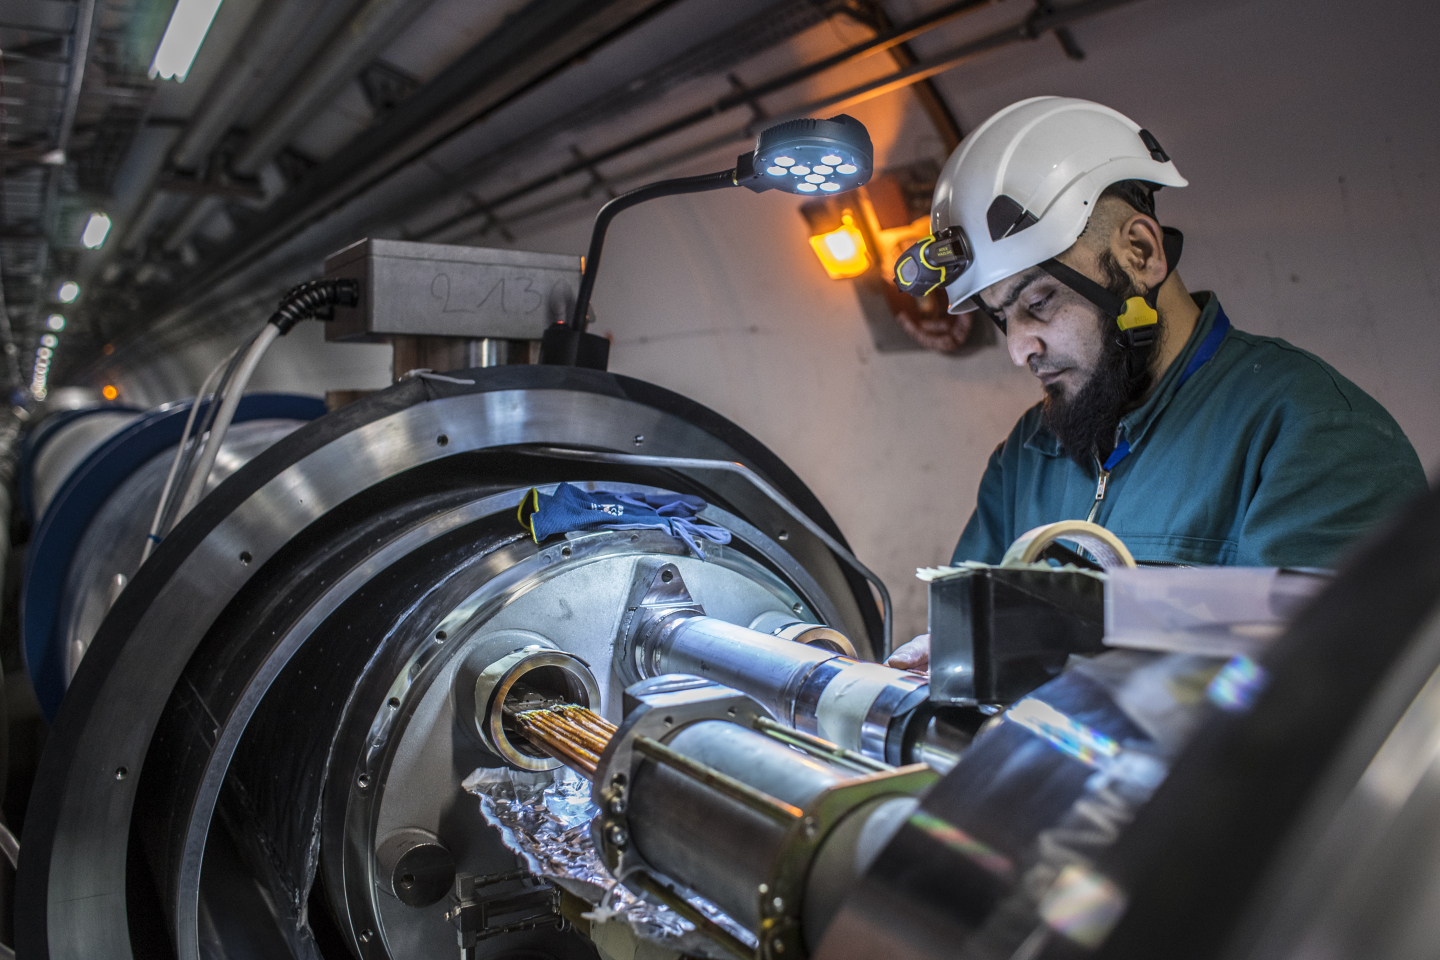 Career at cern their recruitment needs all their jobs 469bdfea f6b6 4216 a992 1aa9f2ea5fa4